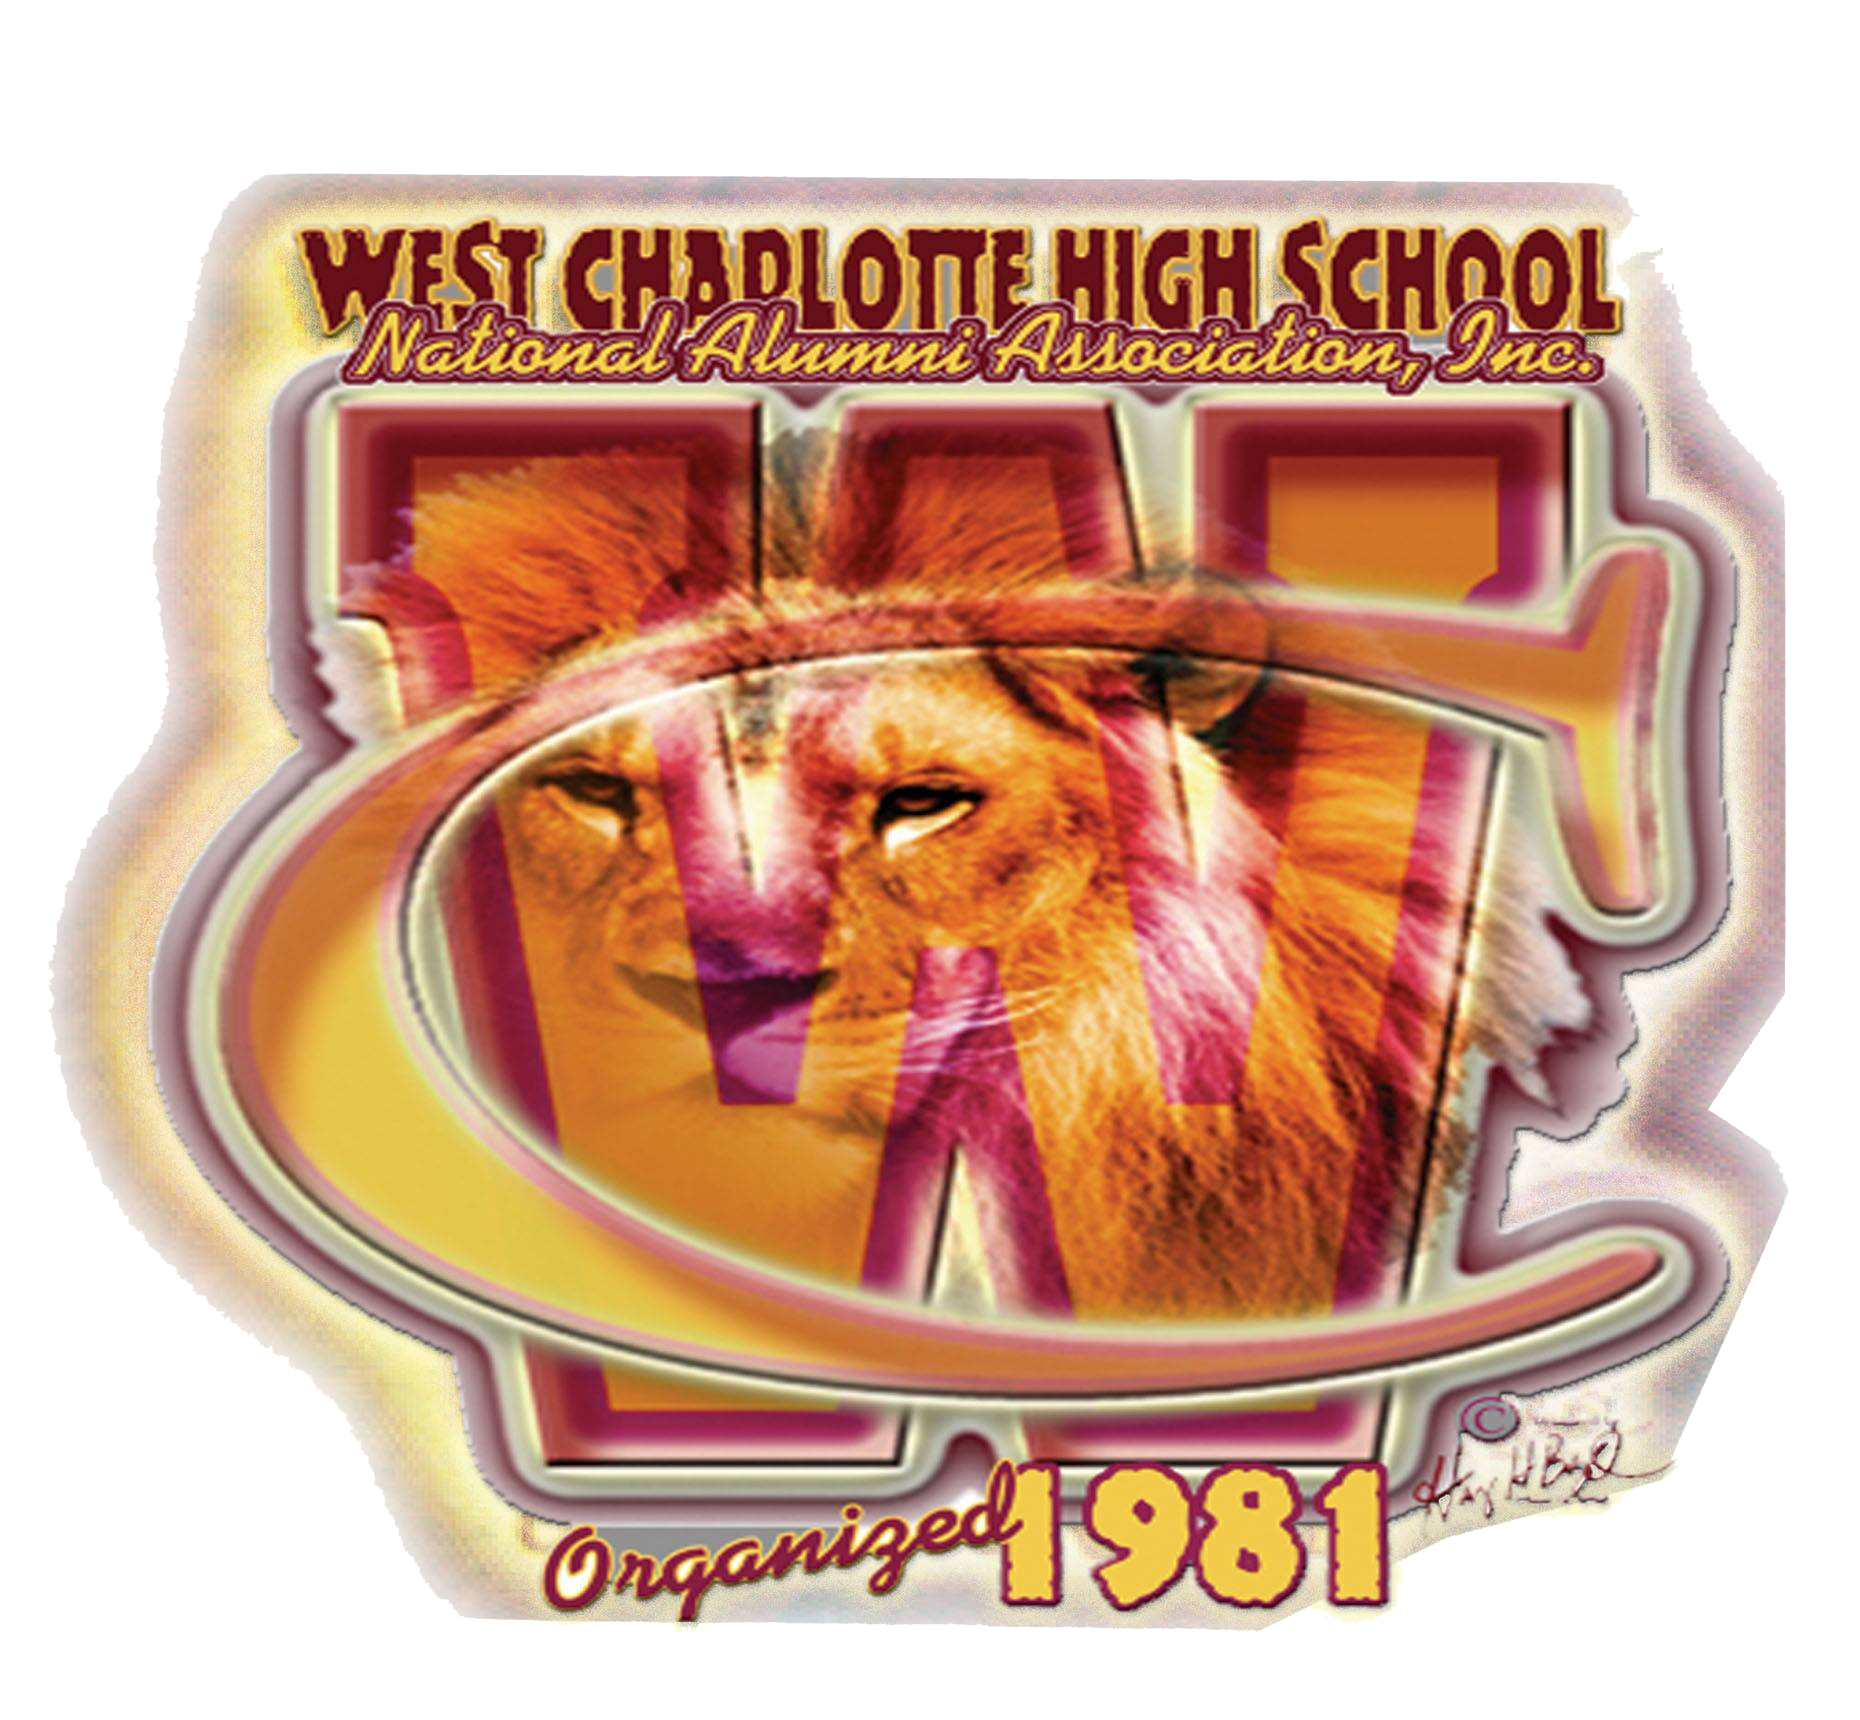 West Charlotte High School National Alumni Association, Inc.